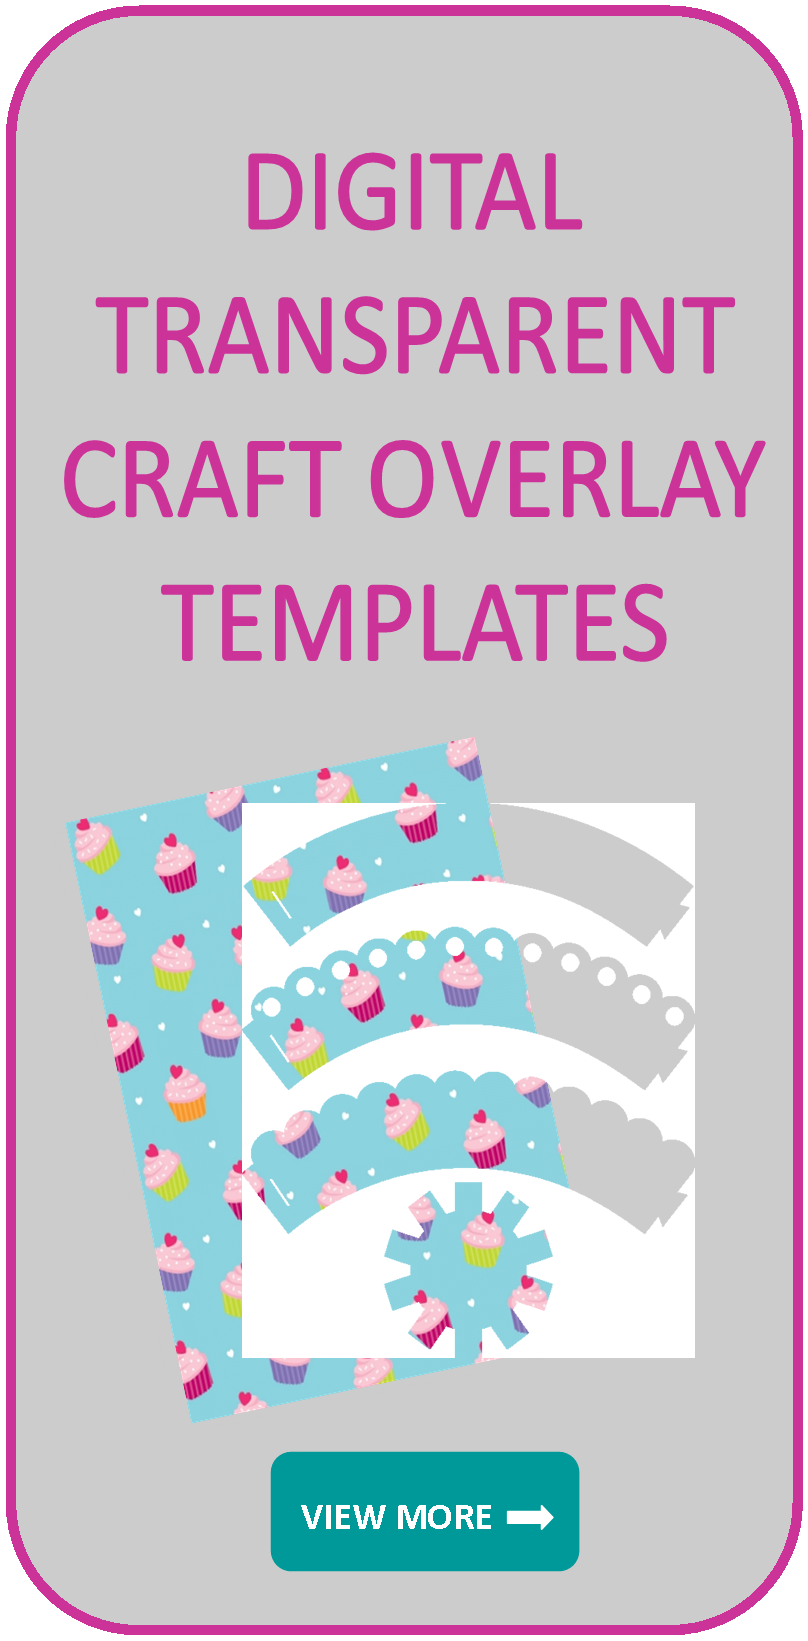 Digital transparent overlay templates